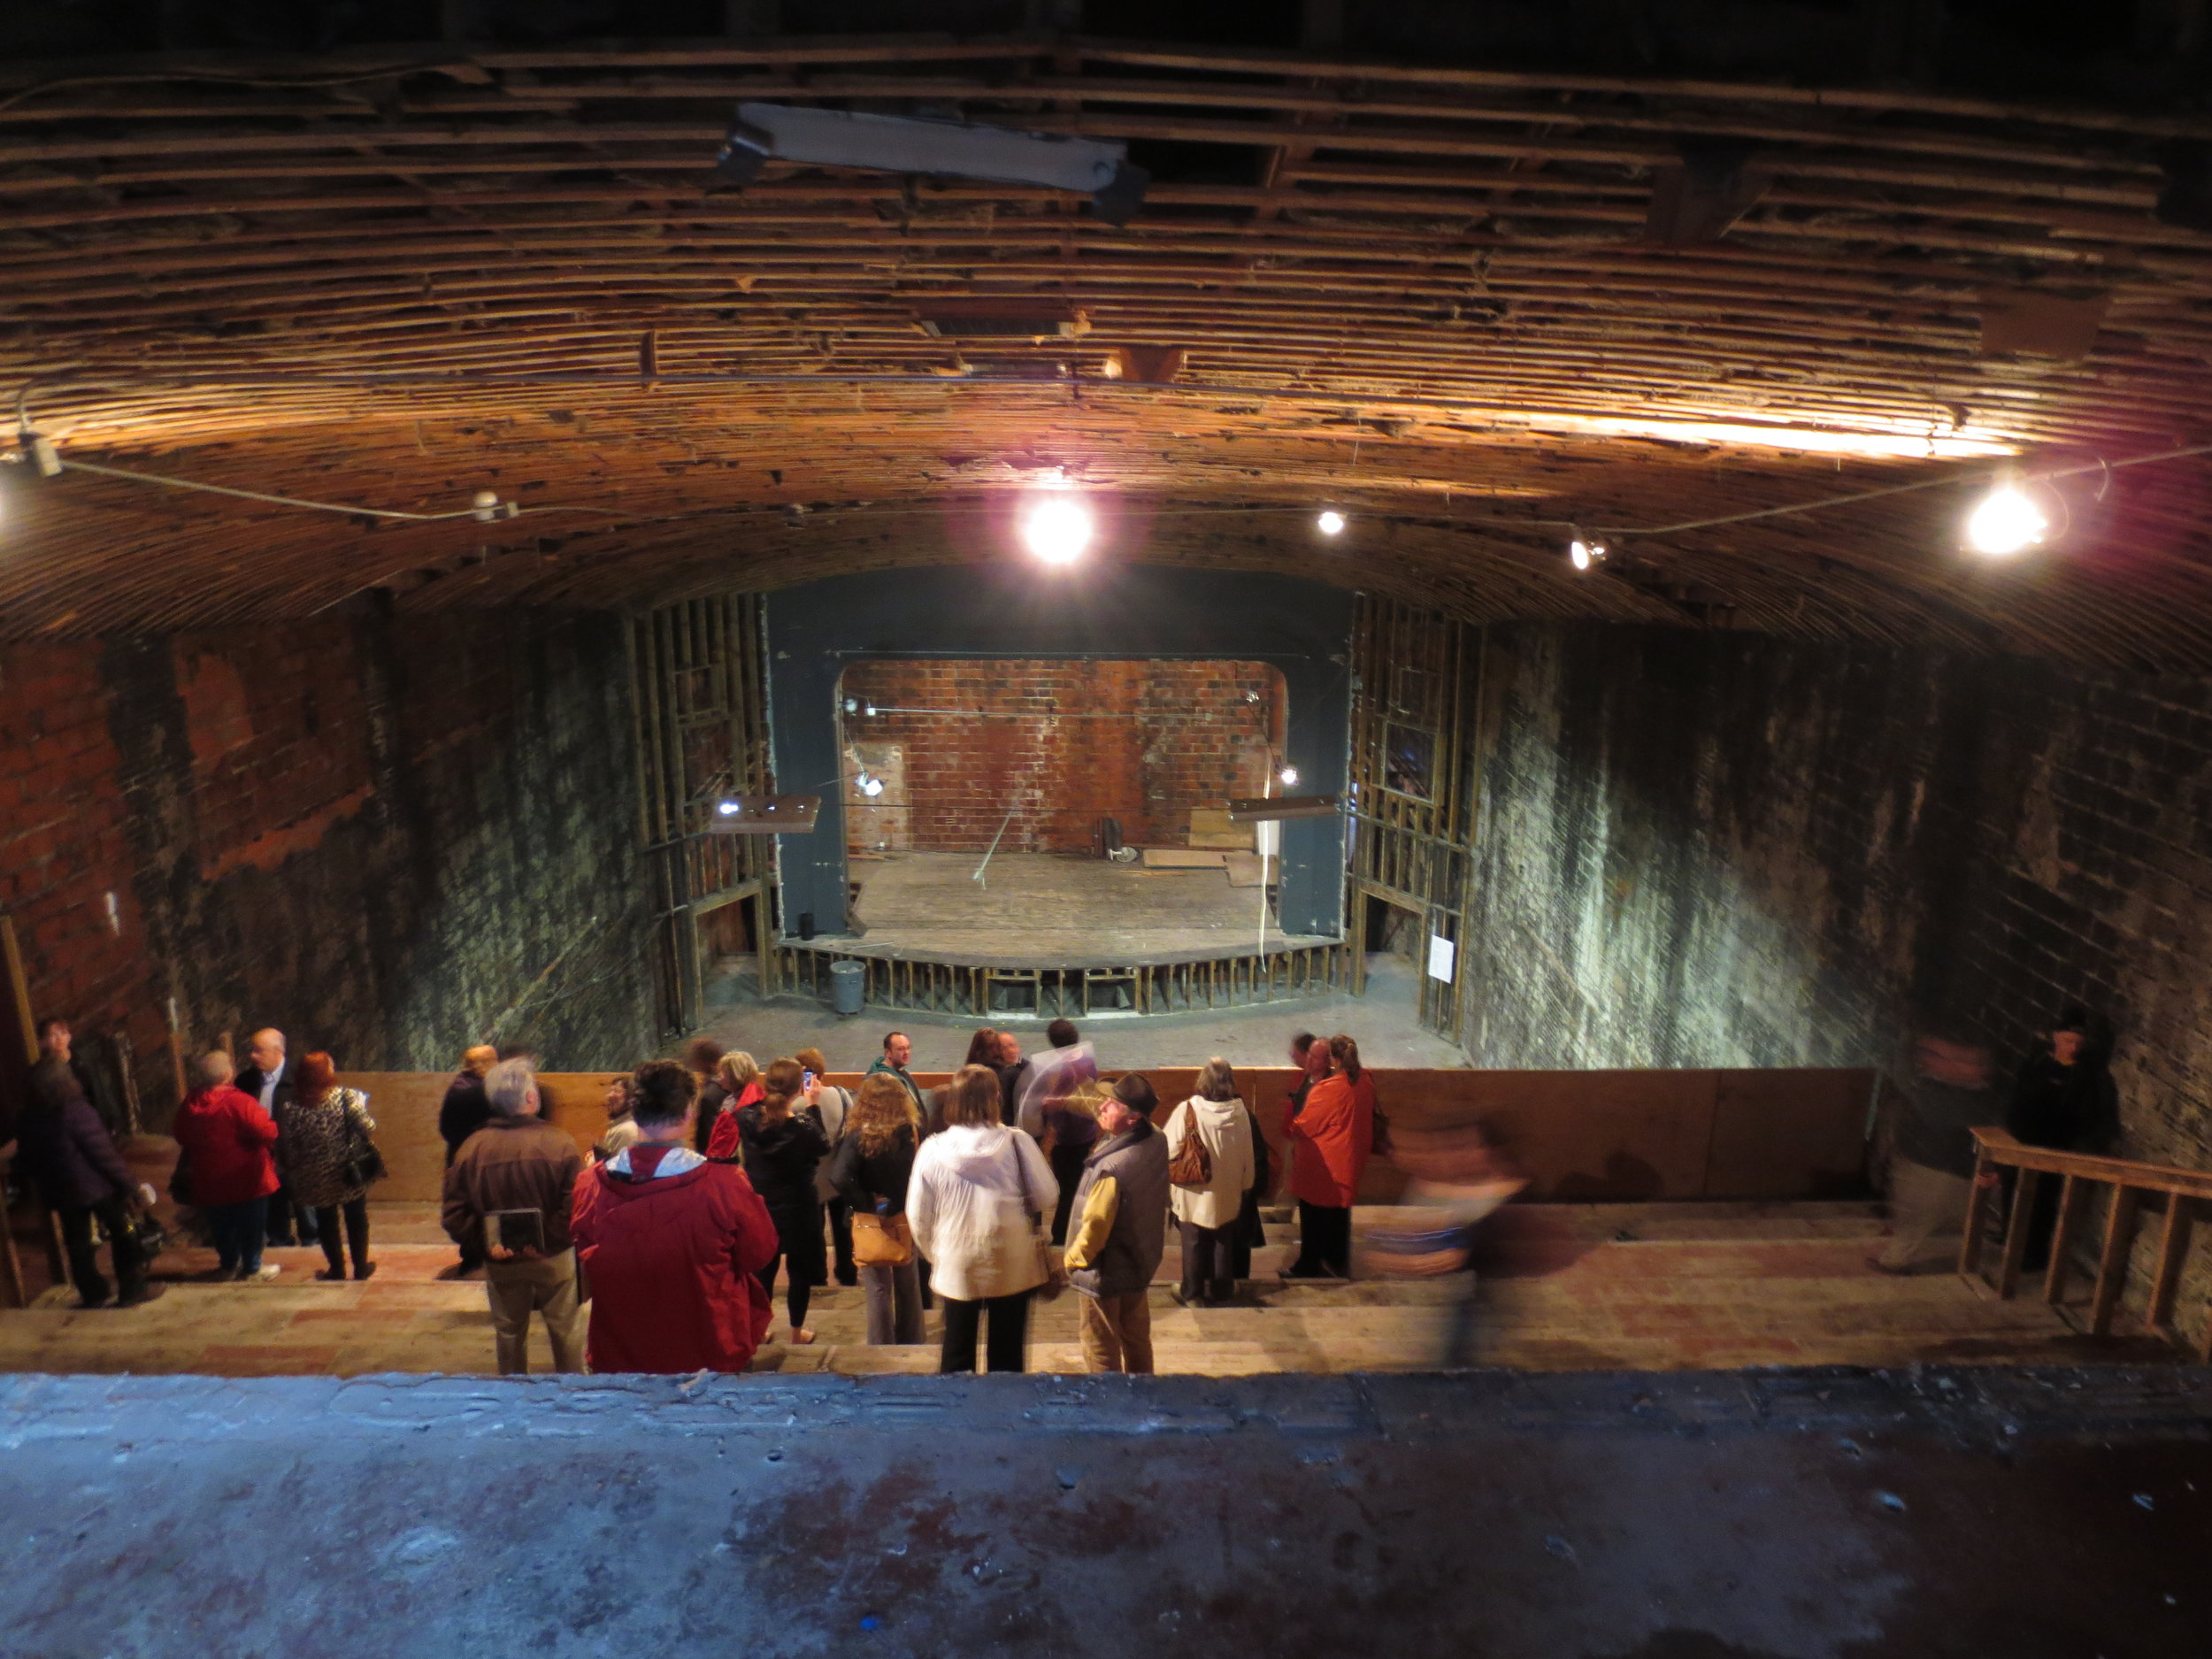 The interior of the Appalachian Theatre as seen from the balcony, May 2013. Image courtesy of Eric Plaag.